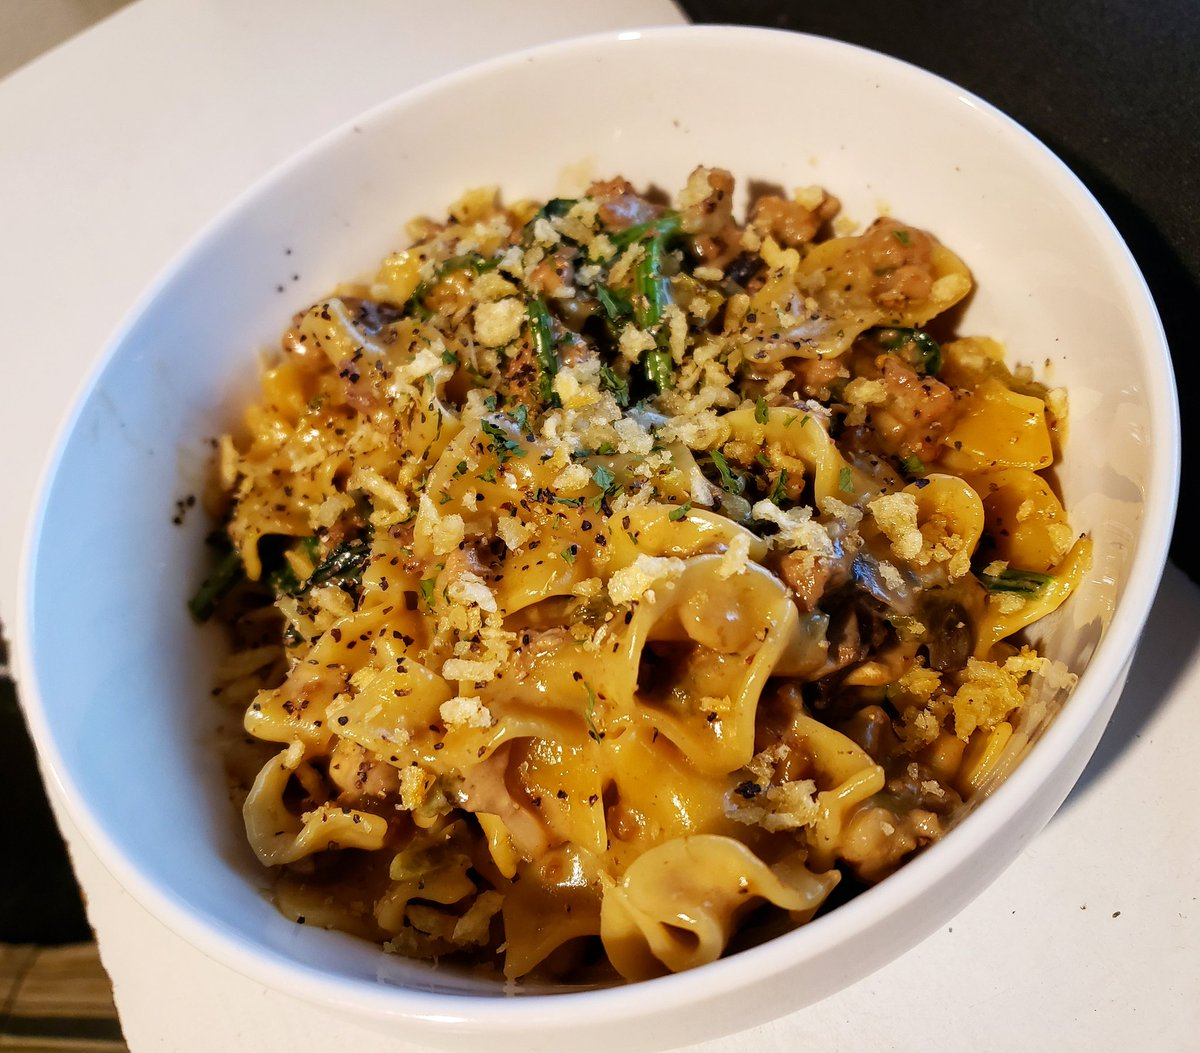 Channeled my Inner Midwestern Housew̶i̶f̶e̶husband for #Dinner! #Cheesy #Spinach, #Mushroom, and #Beef #Noodle #Casserole with a #HimalayanSalt #PotatoChip Crust!  #comfortfood #homemade #chef #cooking #food #foodie #fattie #foodporn #foodpic #yummy #yum #getinmybelly #nom